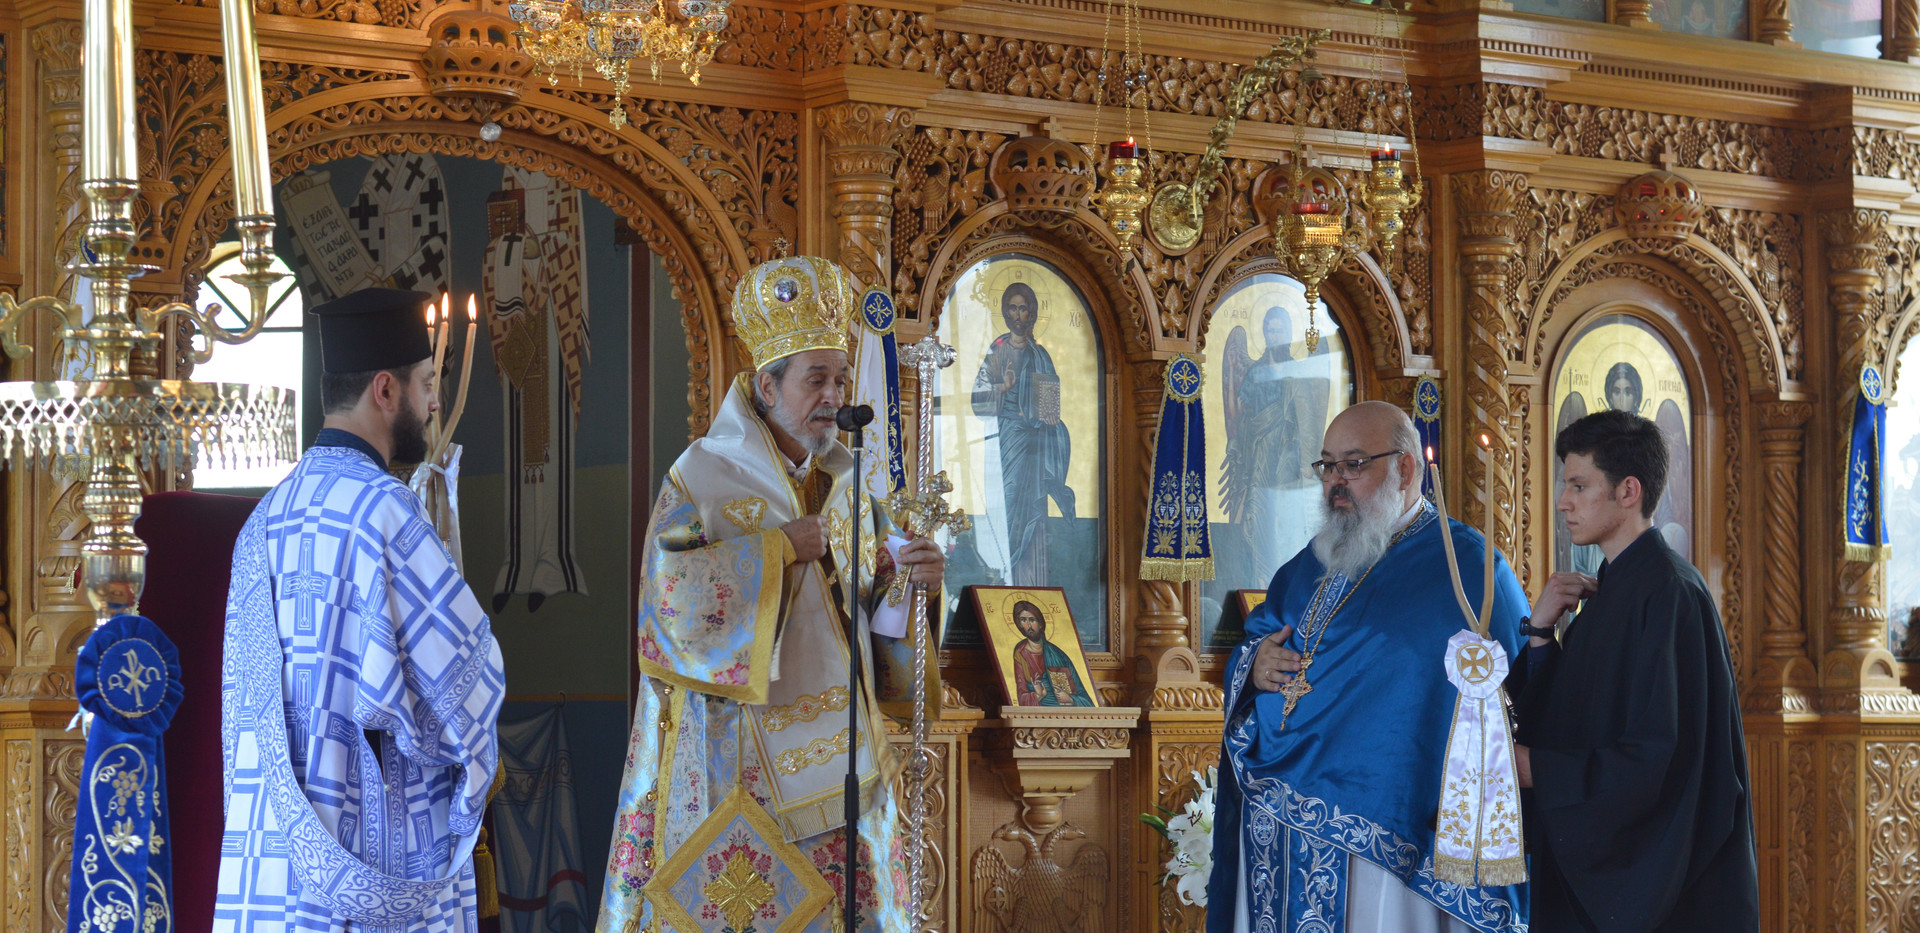 His Gace Bishop Seraphim of Apollonias blessing the congregation